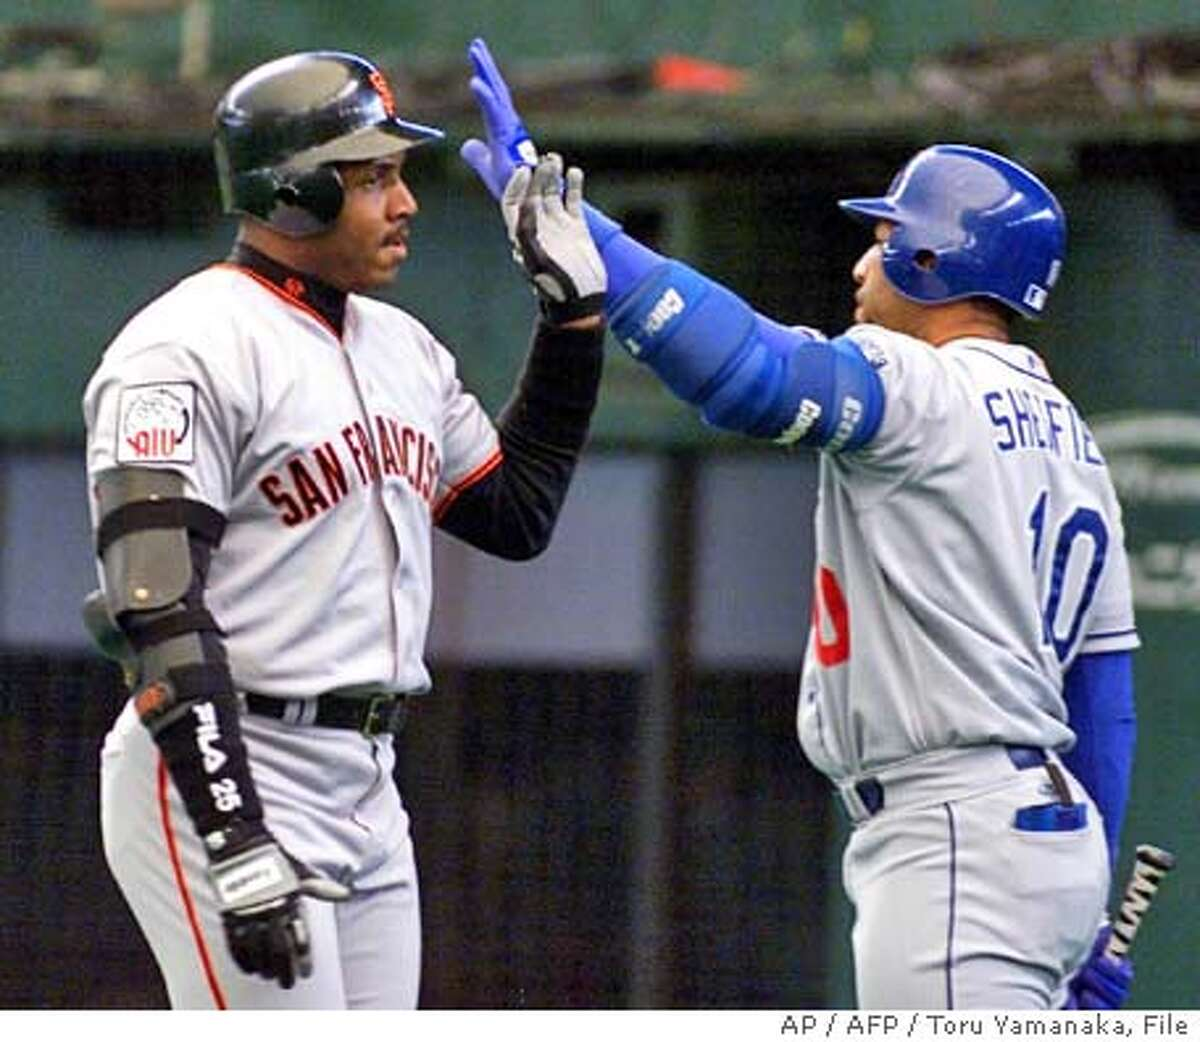 San Francisco Giants outfielder Barry Bonds (L) is congratulated by Los Angeles Dodgers outfielder Gary Sheffield (R) after Bonds hit a three-run homer in the fourth inning of the US-Japan All Star baseball game in Tokorozawa, suburb of Tokyo, 11 November 2000. The Major League Baseball All Star team defeated Japanese team 13-5. AFP PHOTO/Toru YAMANAKA Nation#MainNews#Chronicle#12/3/2004#ALL#5star##0422496891